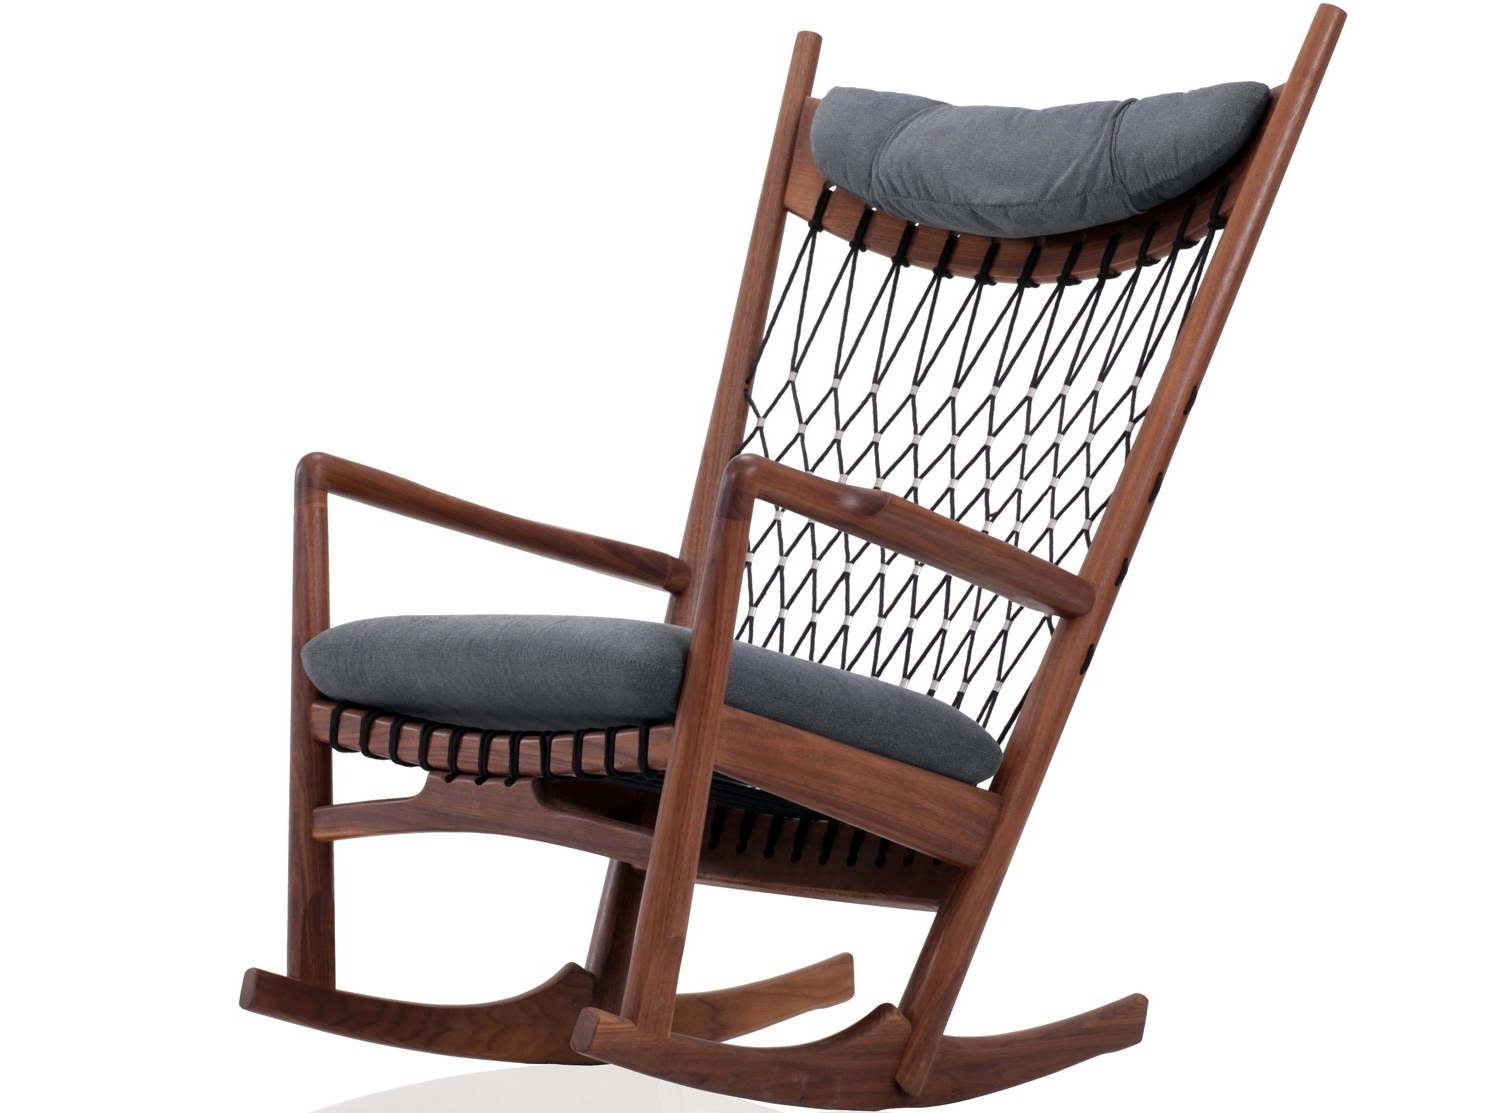 Rocking Chairs Adelaide Intended For Well Known Wegner Net Rocking Chair (Replica) (View 9 of 15)